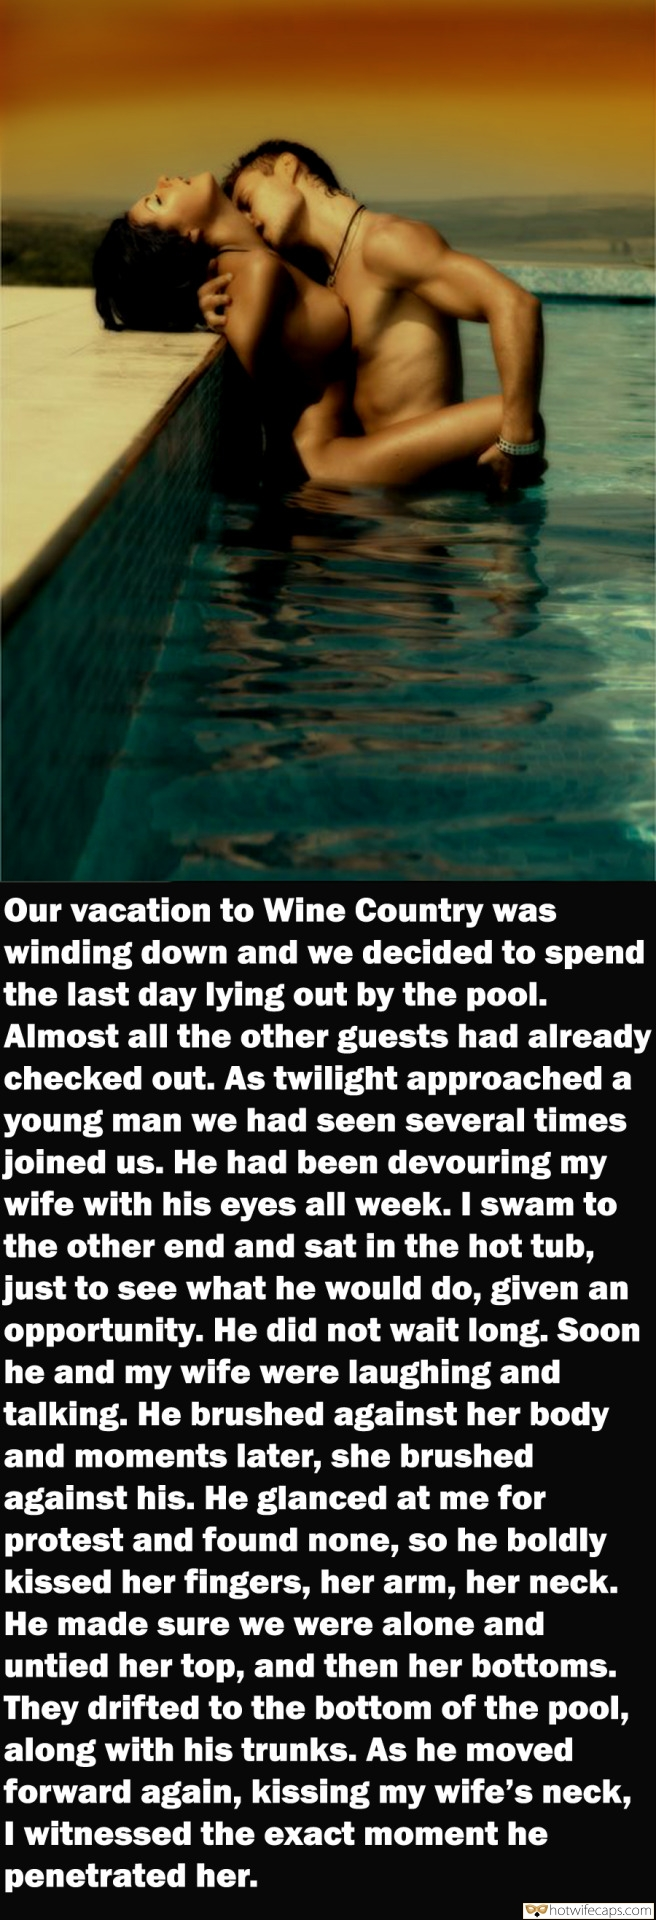 Vacation Sexy Memes hotwife caption: Our vacation to Wine Country was winding down and we decided to spend the last day lying out by the pool. Almost all the other guests had already checked out. As twilight approached a young man we had seen several...